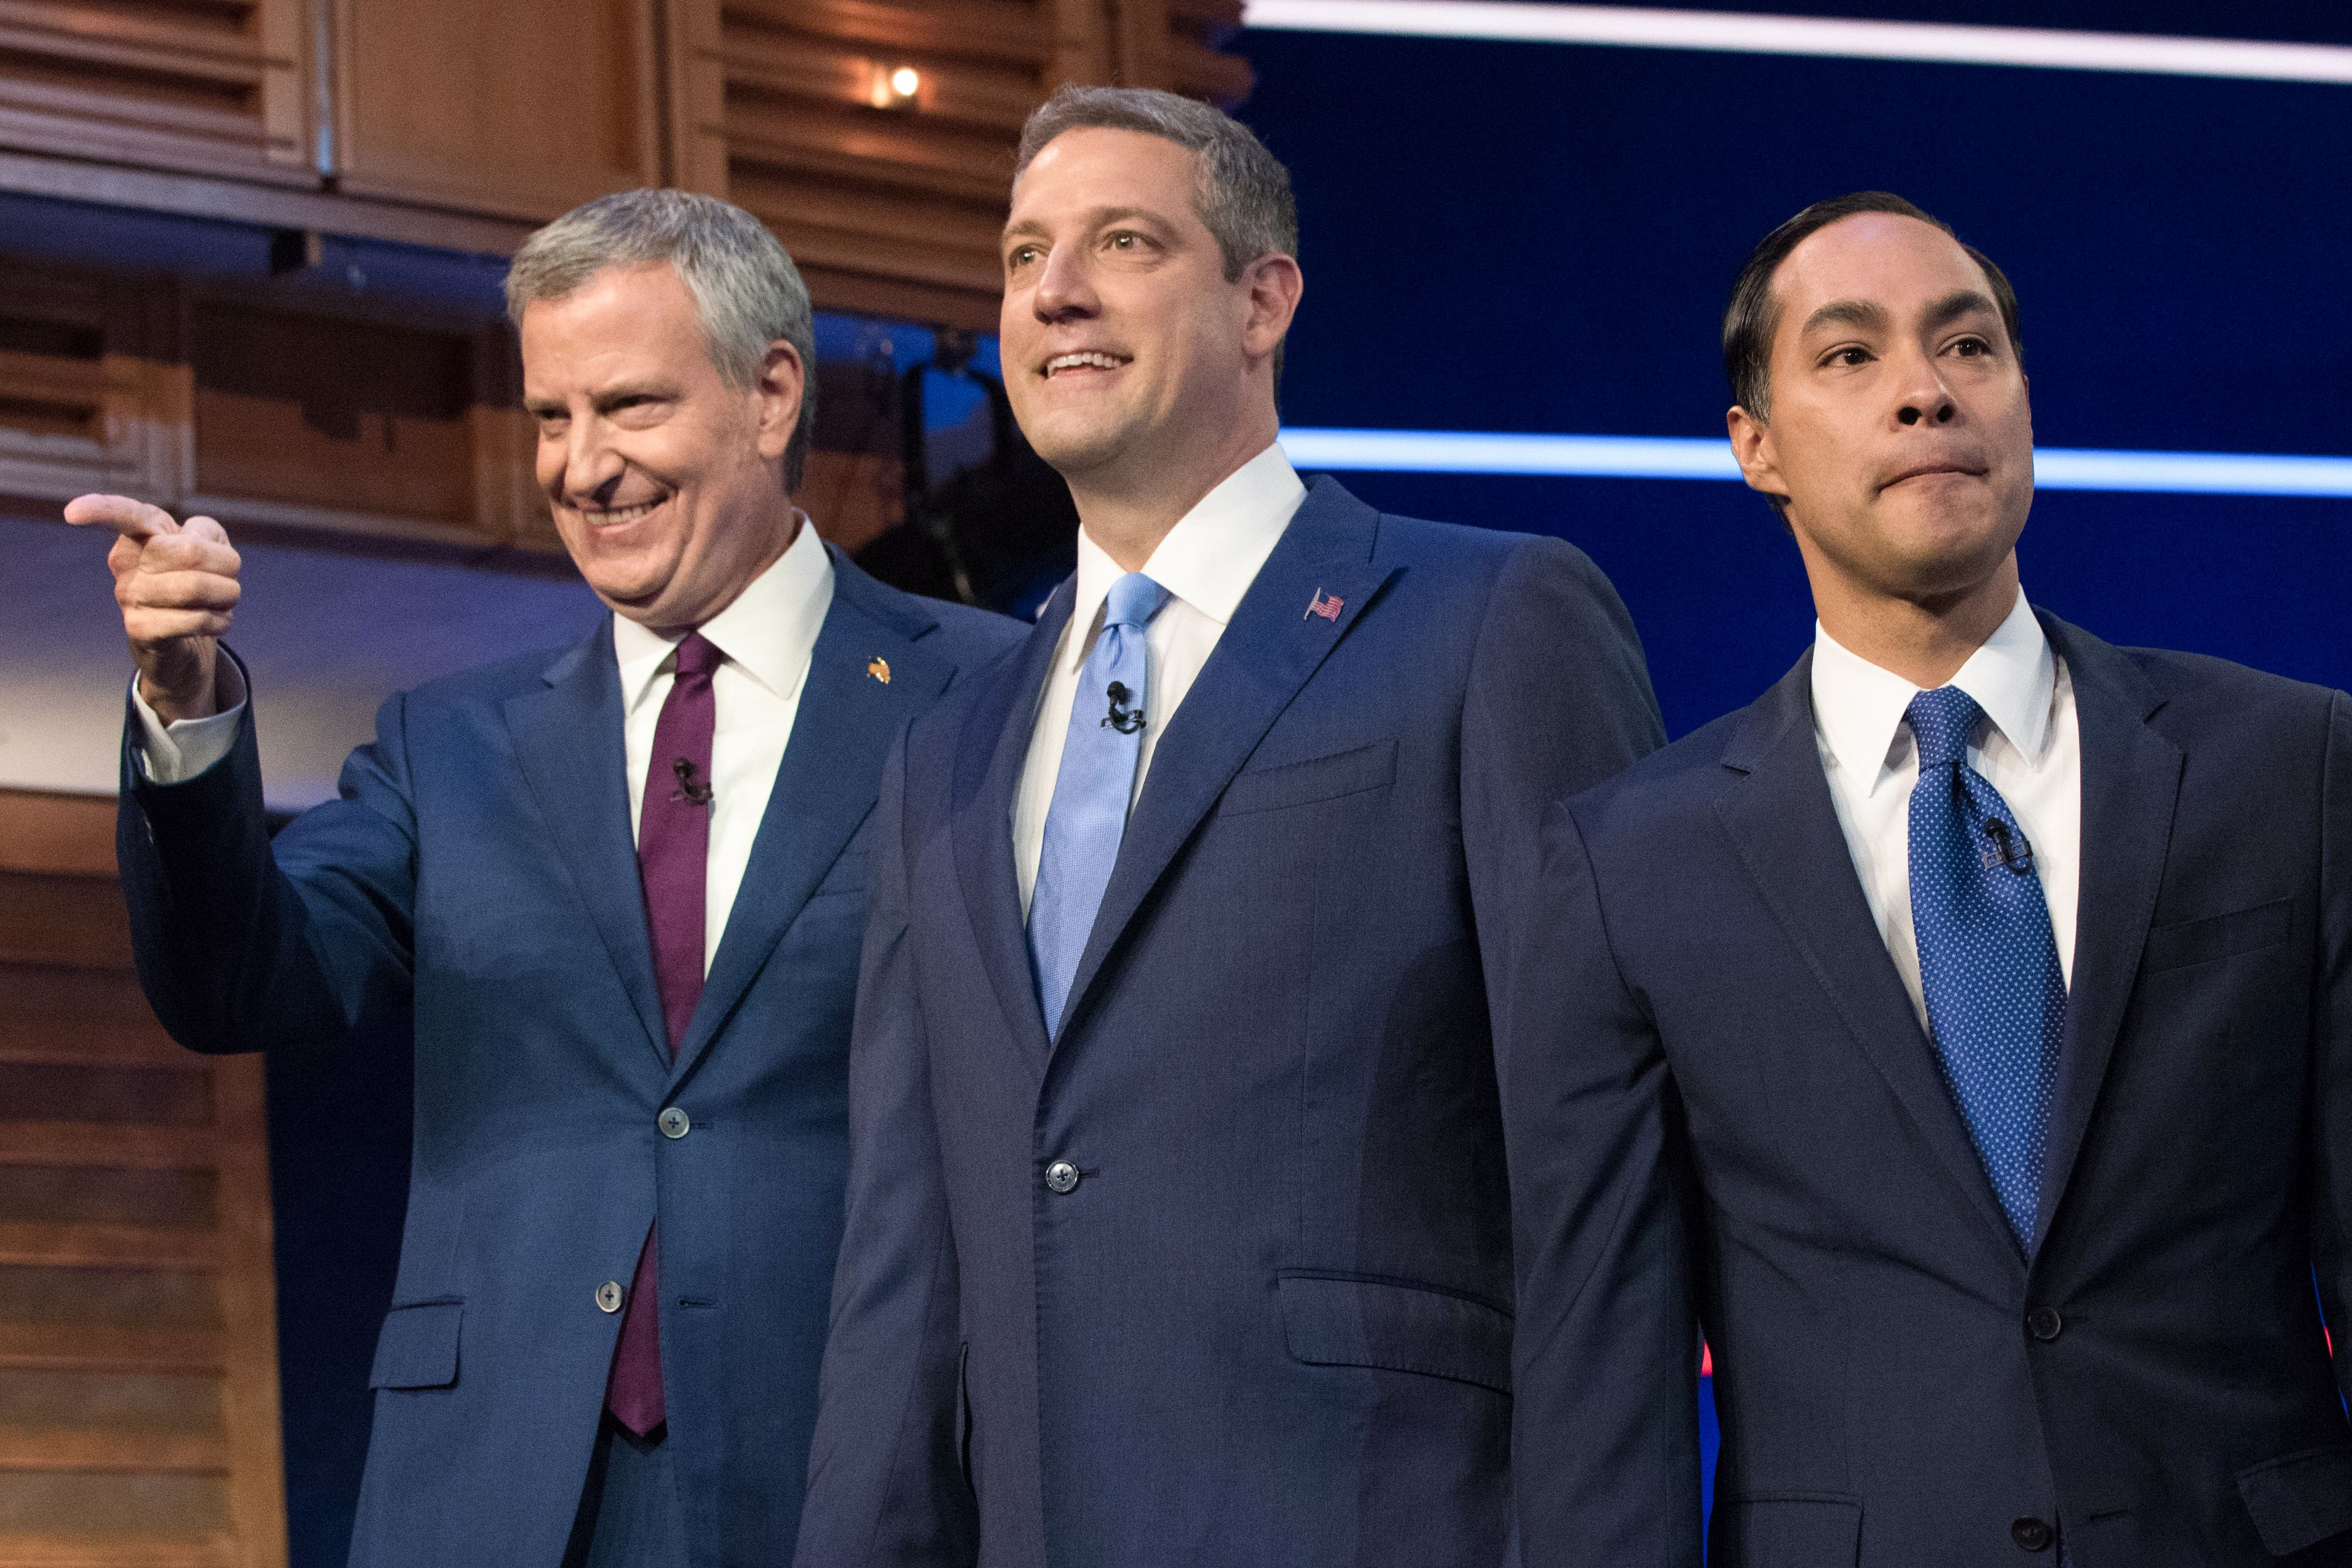 Bill de Blasio, Tim Ryan and Julian Castro were among 10 to face off during the first presidential debate Wednesday!